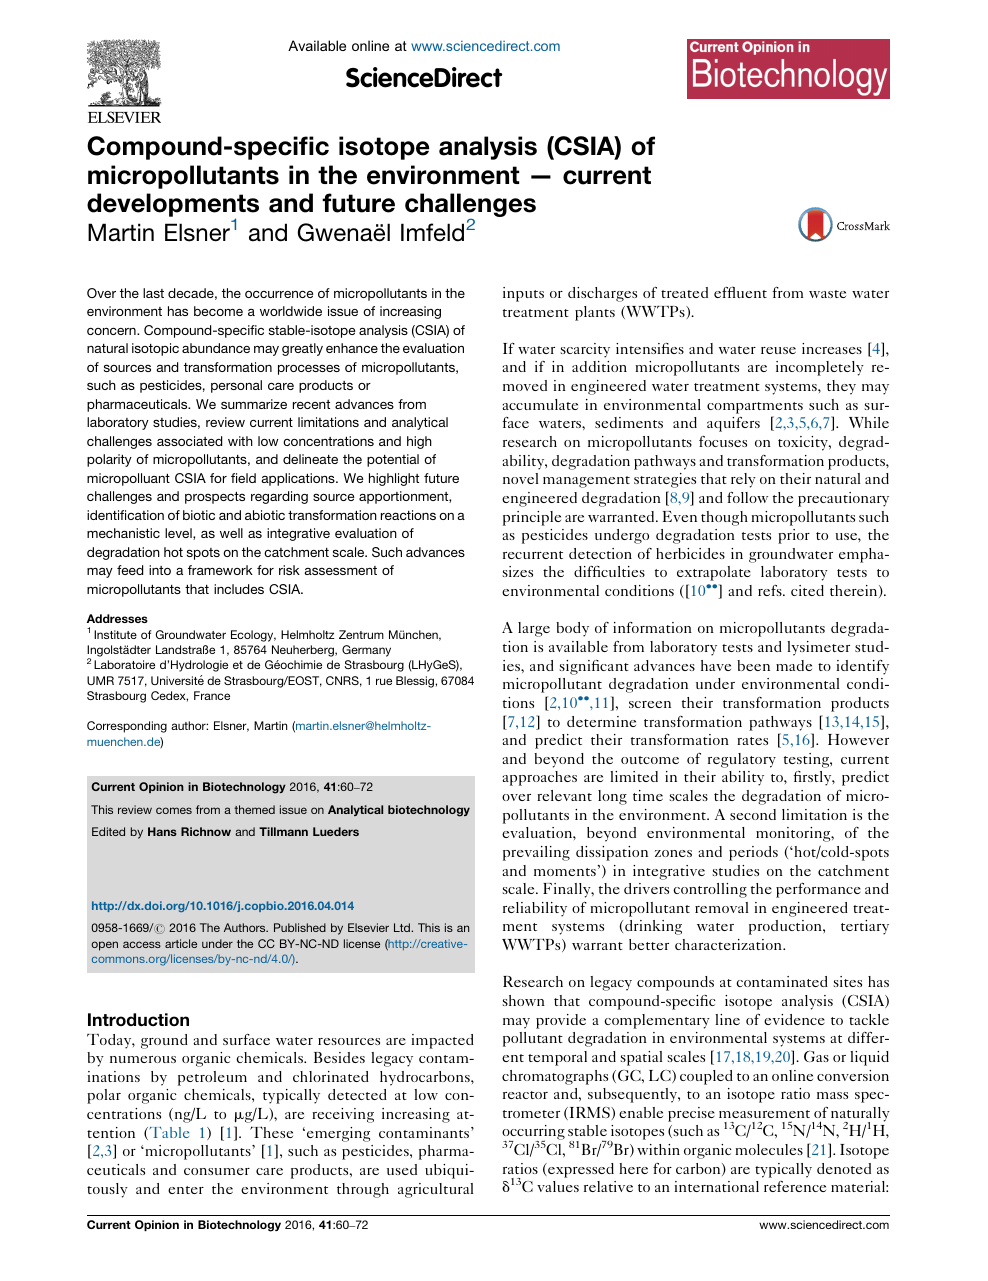 Compound-specific isotope analysis (CSIA) of micropollutants